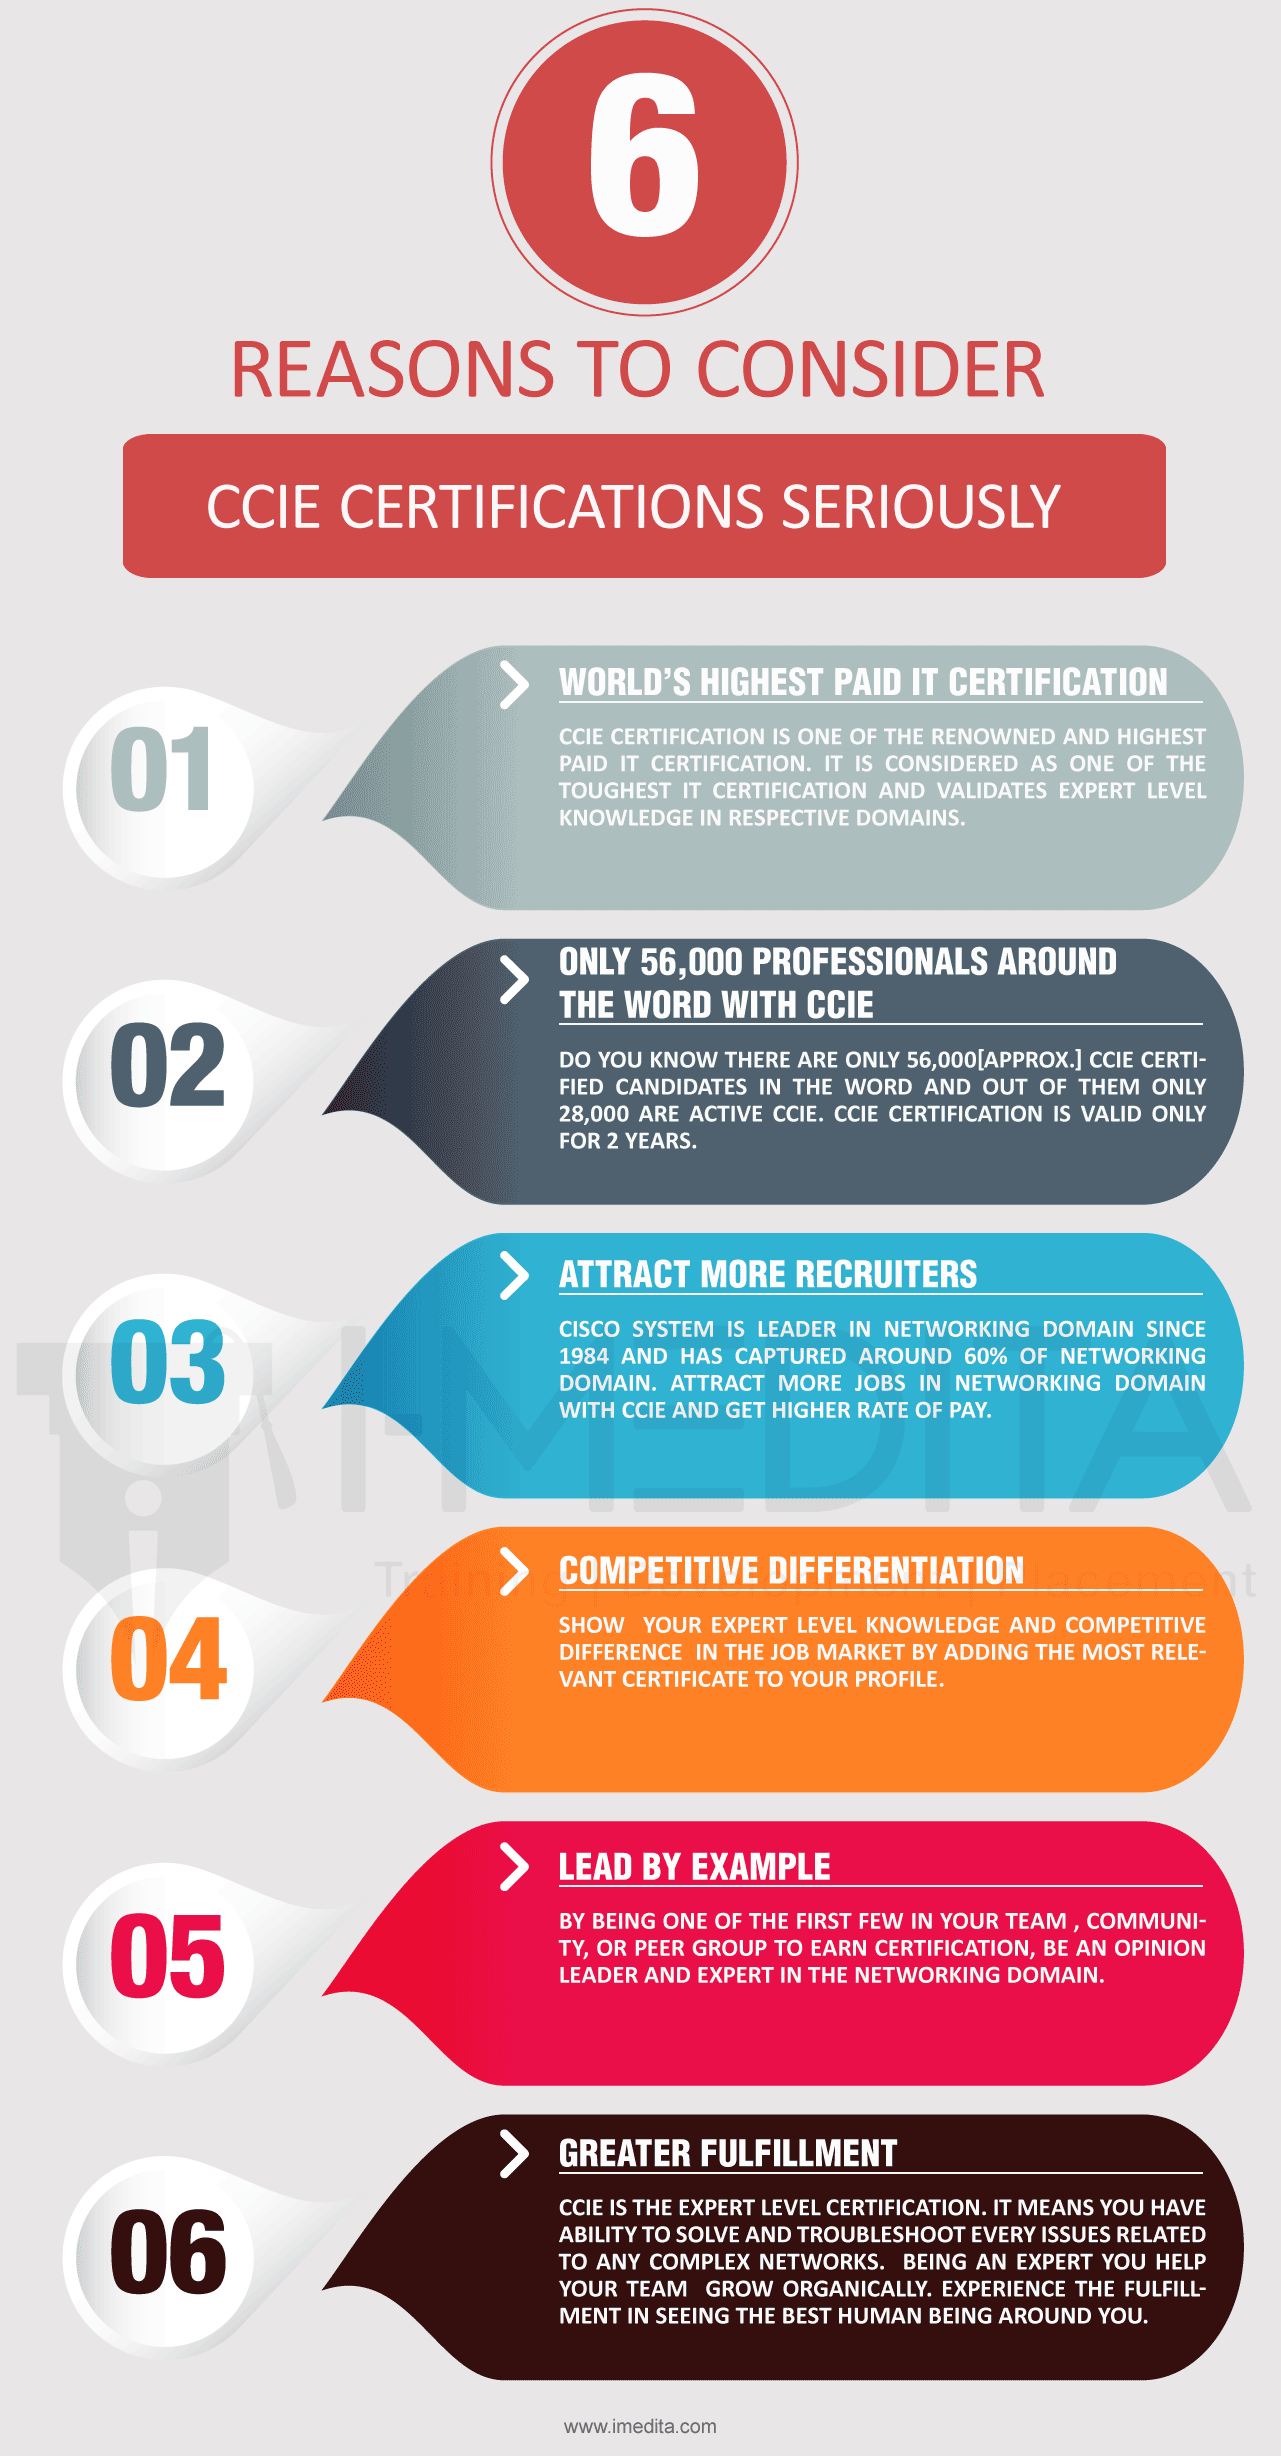 6-reasons-to-consider-ccie-certifications-seriously-infographic